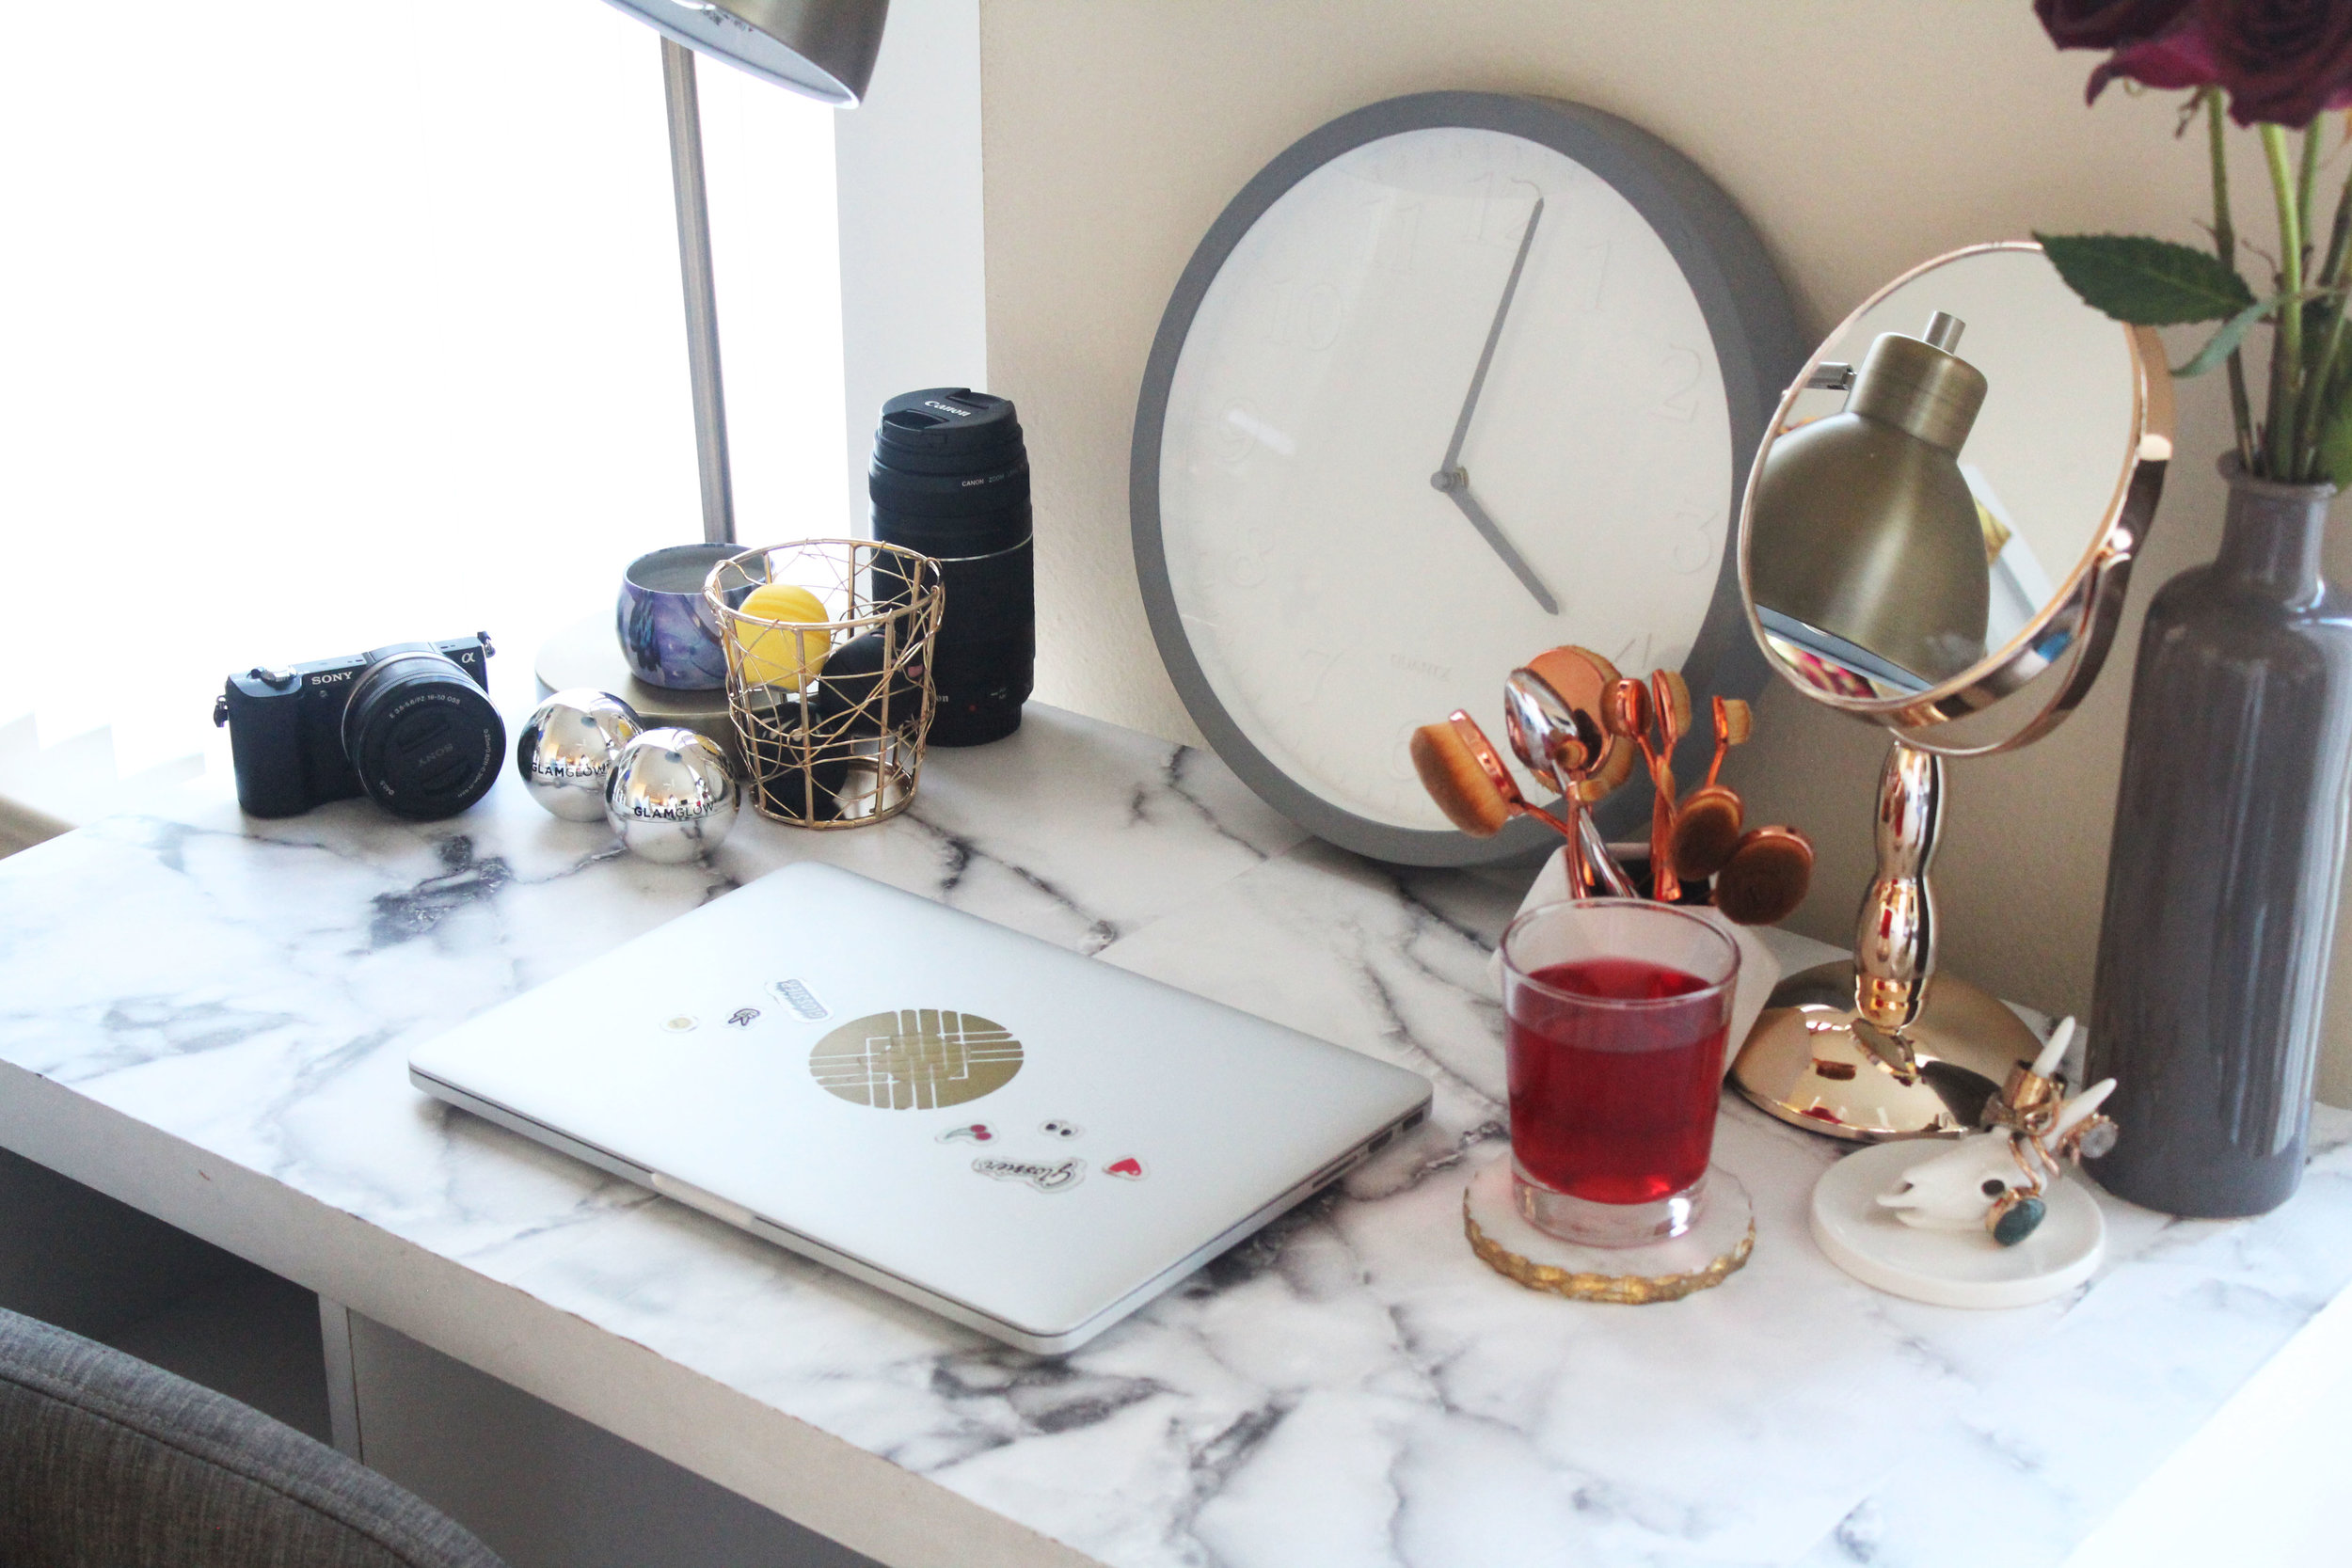 Rose gold table mirror ($14.99) // Clock ($14.99)